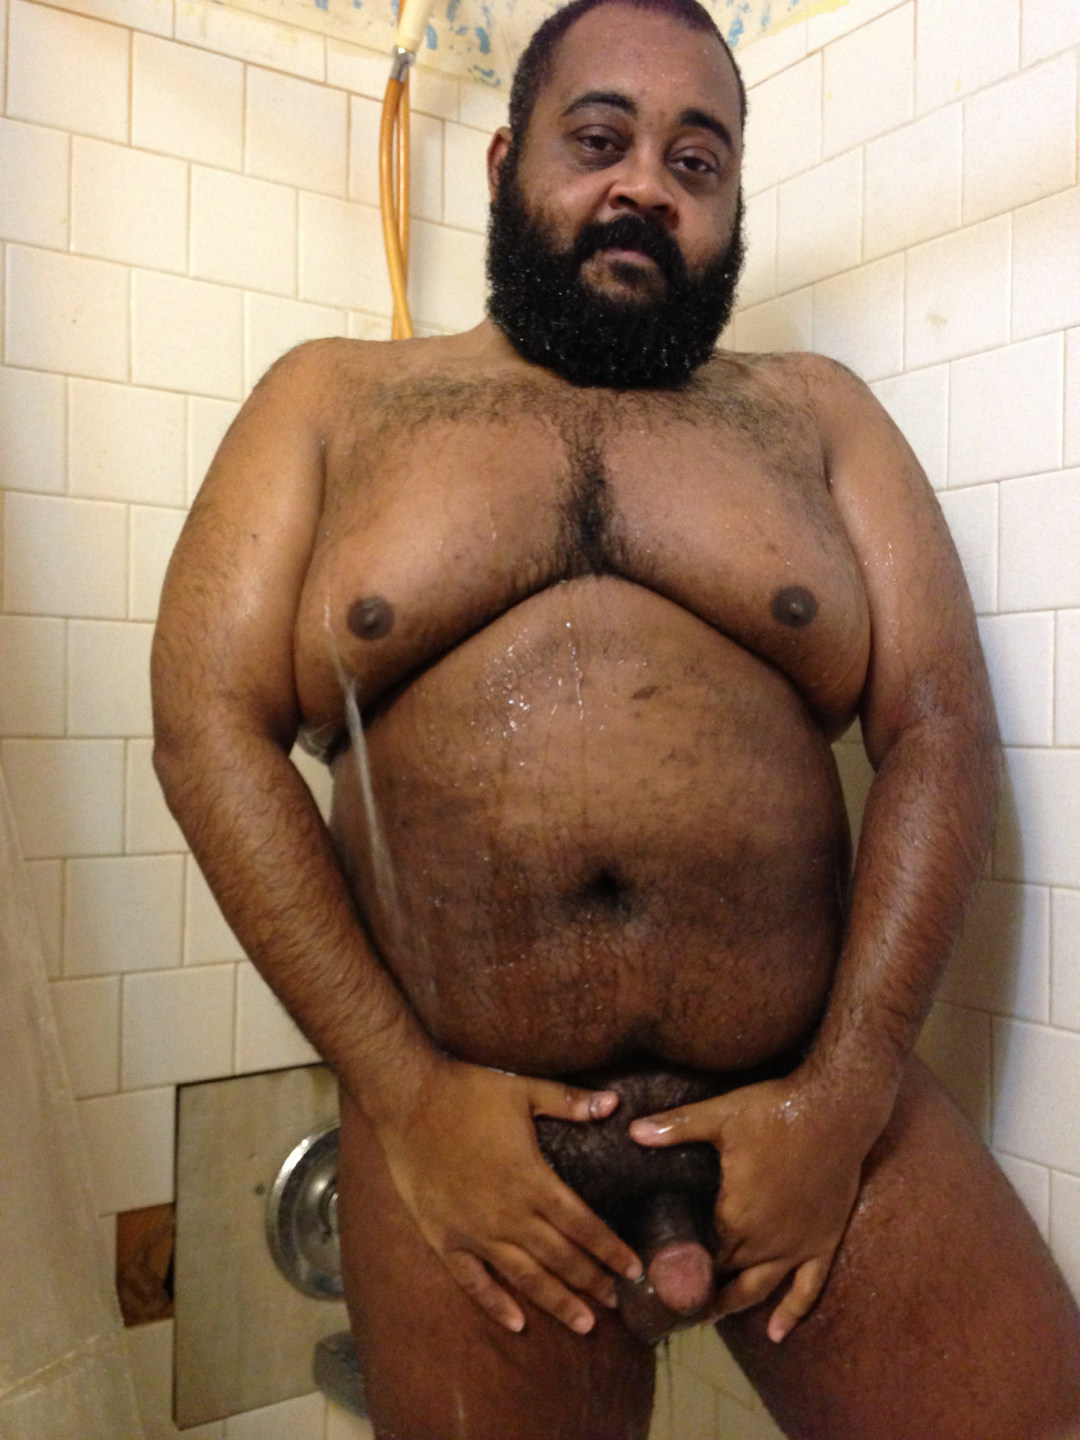 hairy xxx gay - chubby gay men - black chubby bear